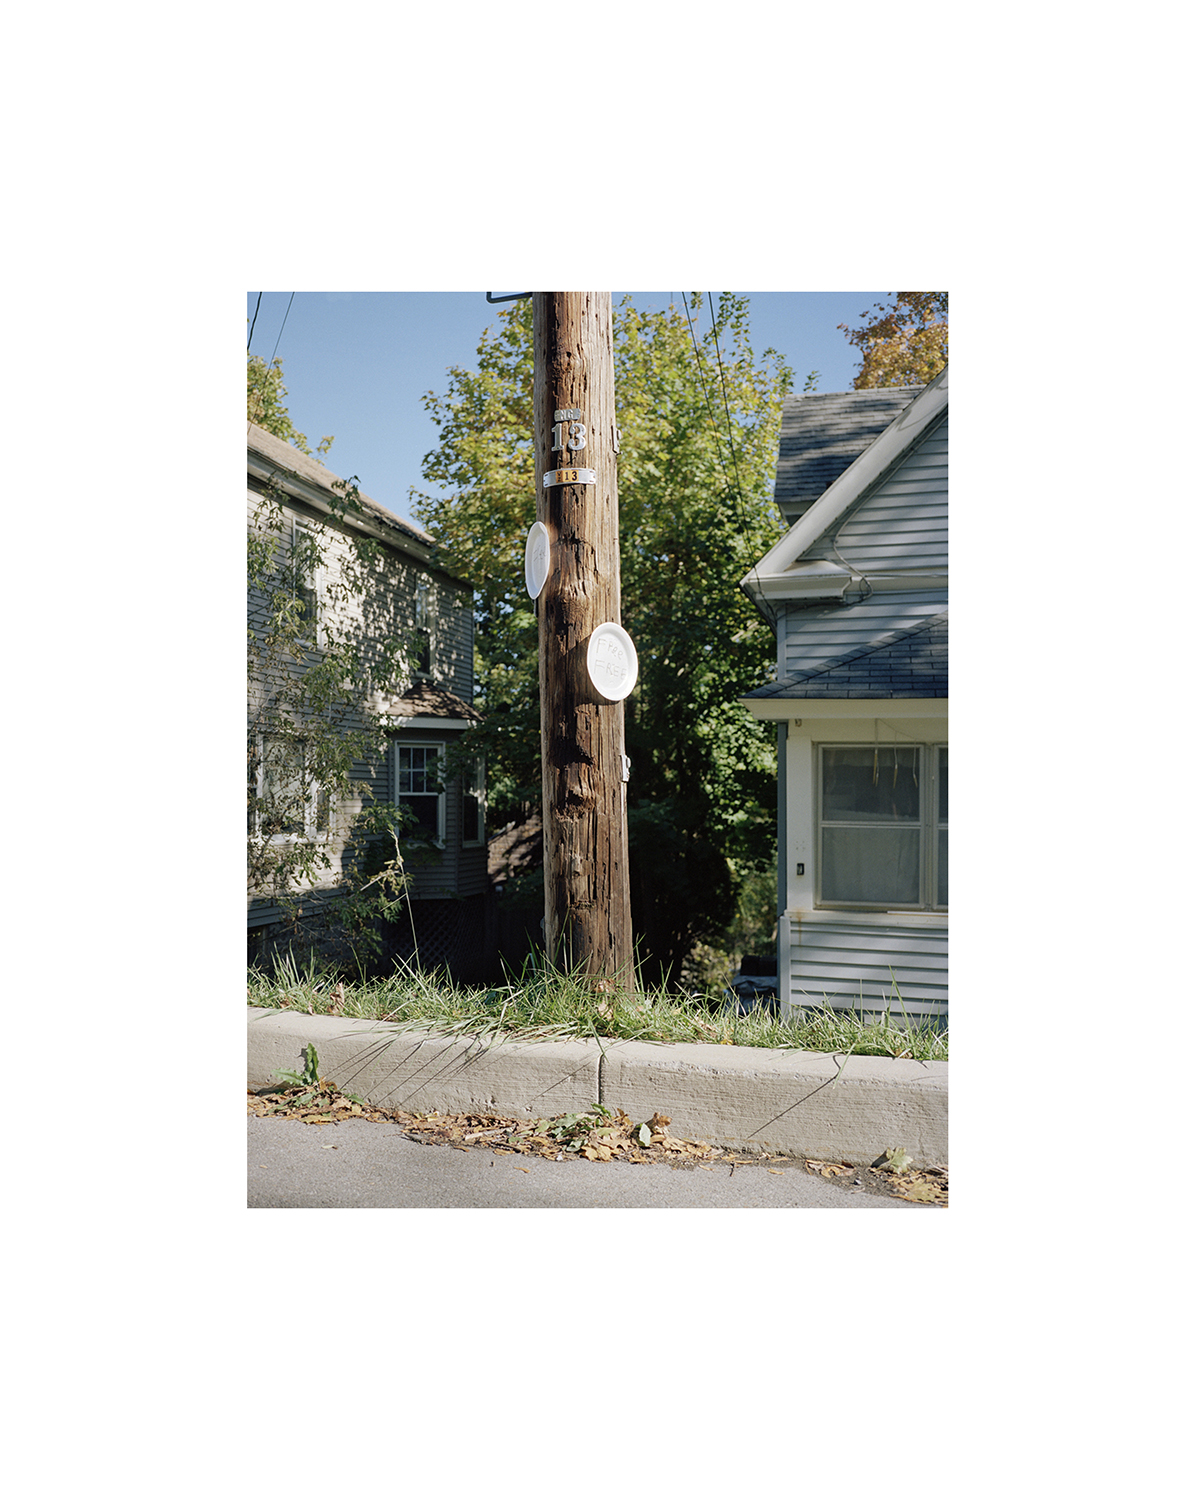 A photo of an electrical service pole between two houses.